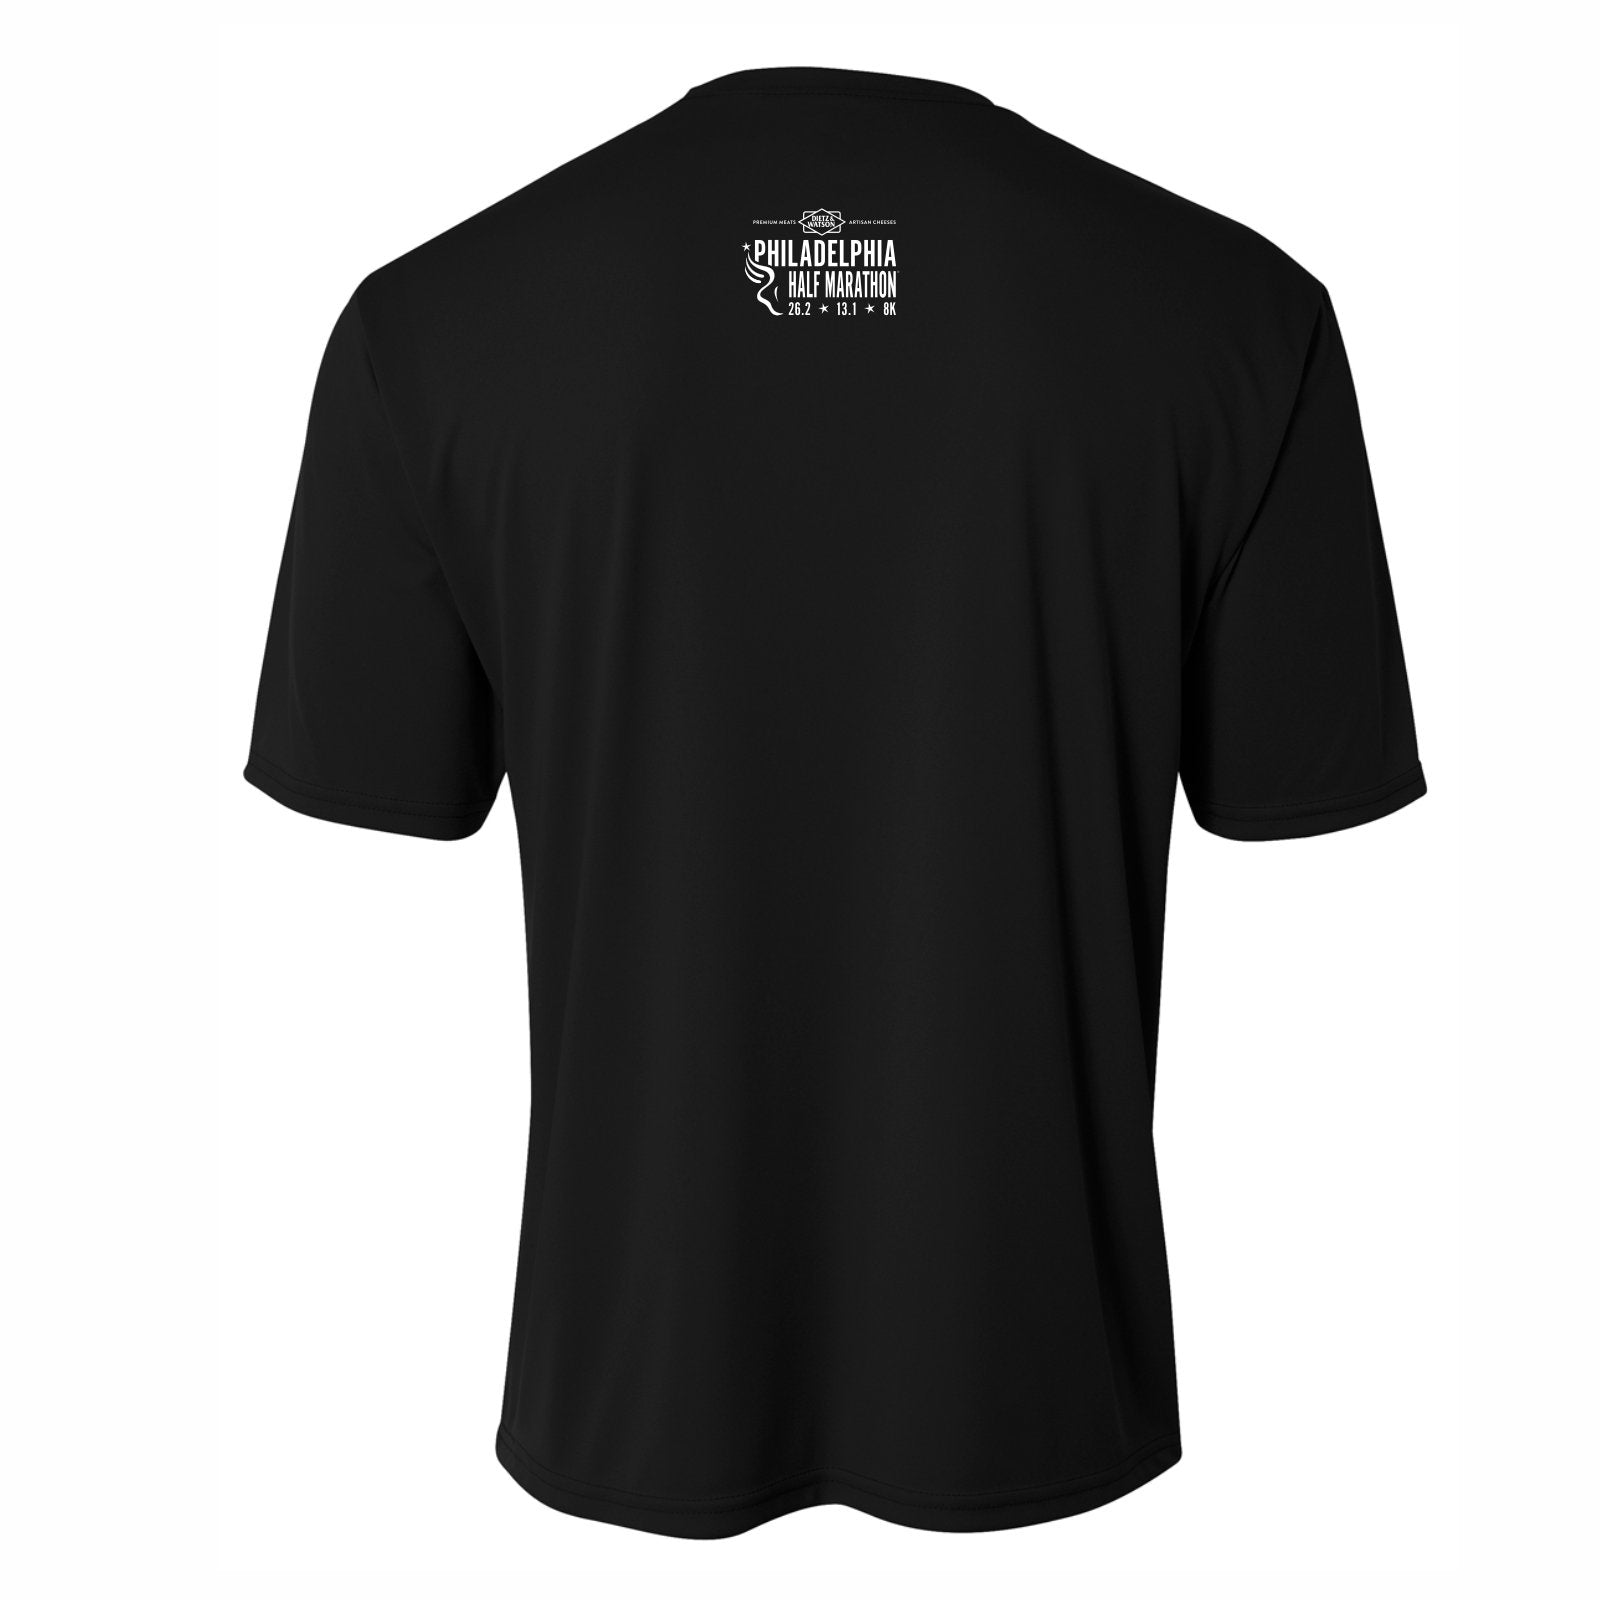 Men's SS Tech Tee -Black 'Left Chest Print Design' - Dietz & Watson Philadelphia Half Marathon